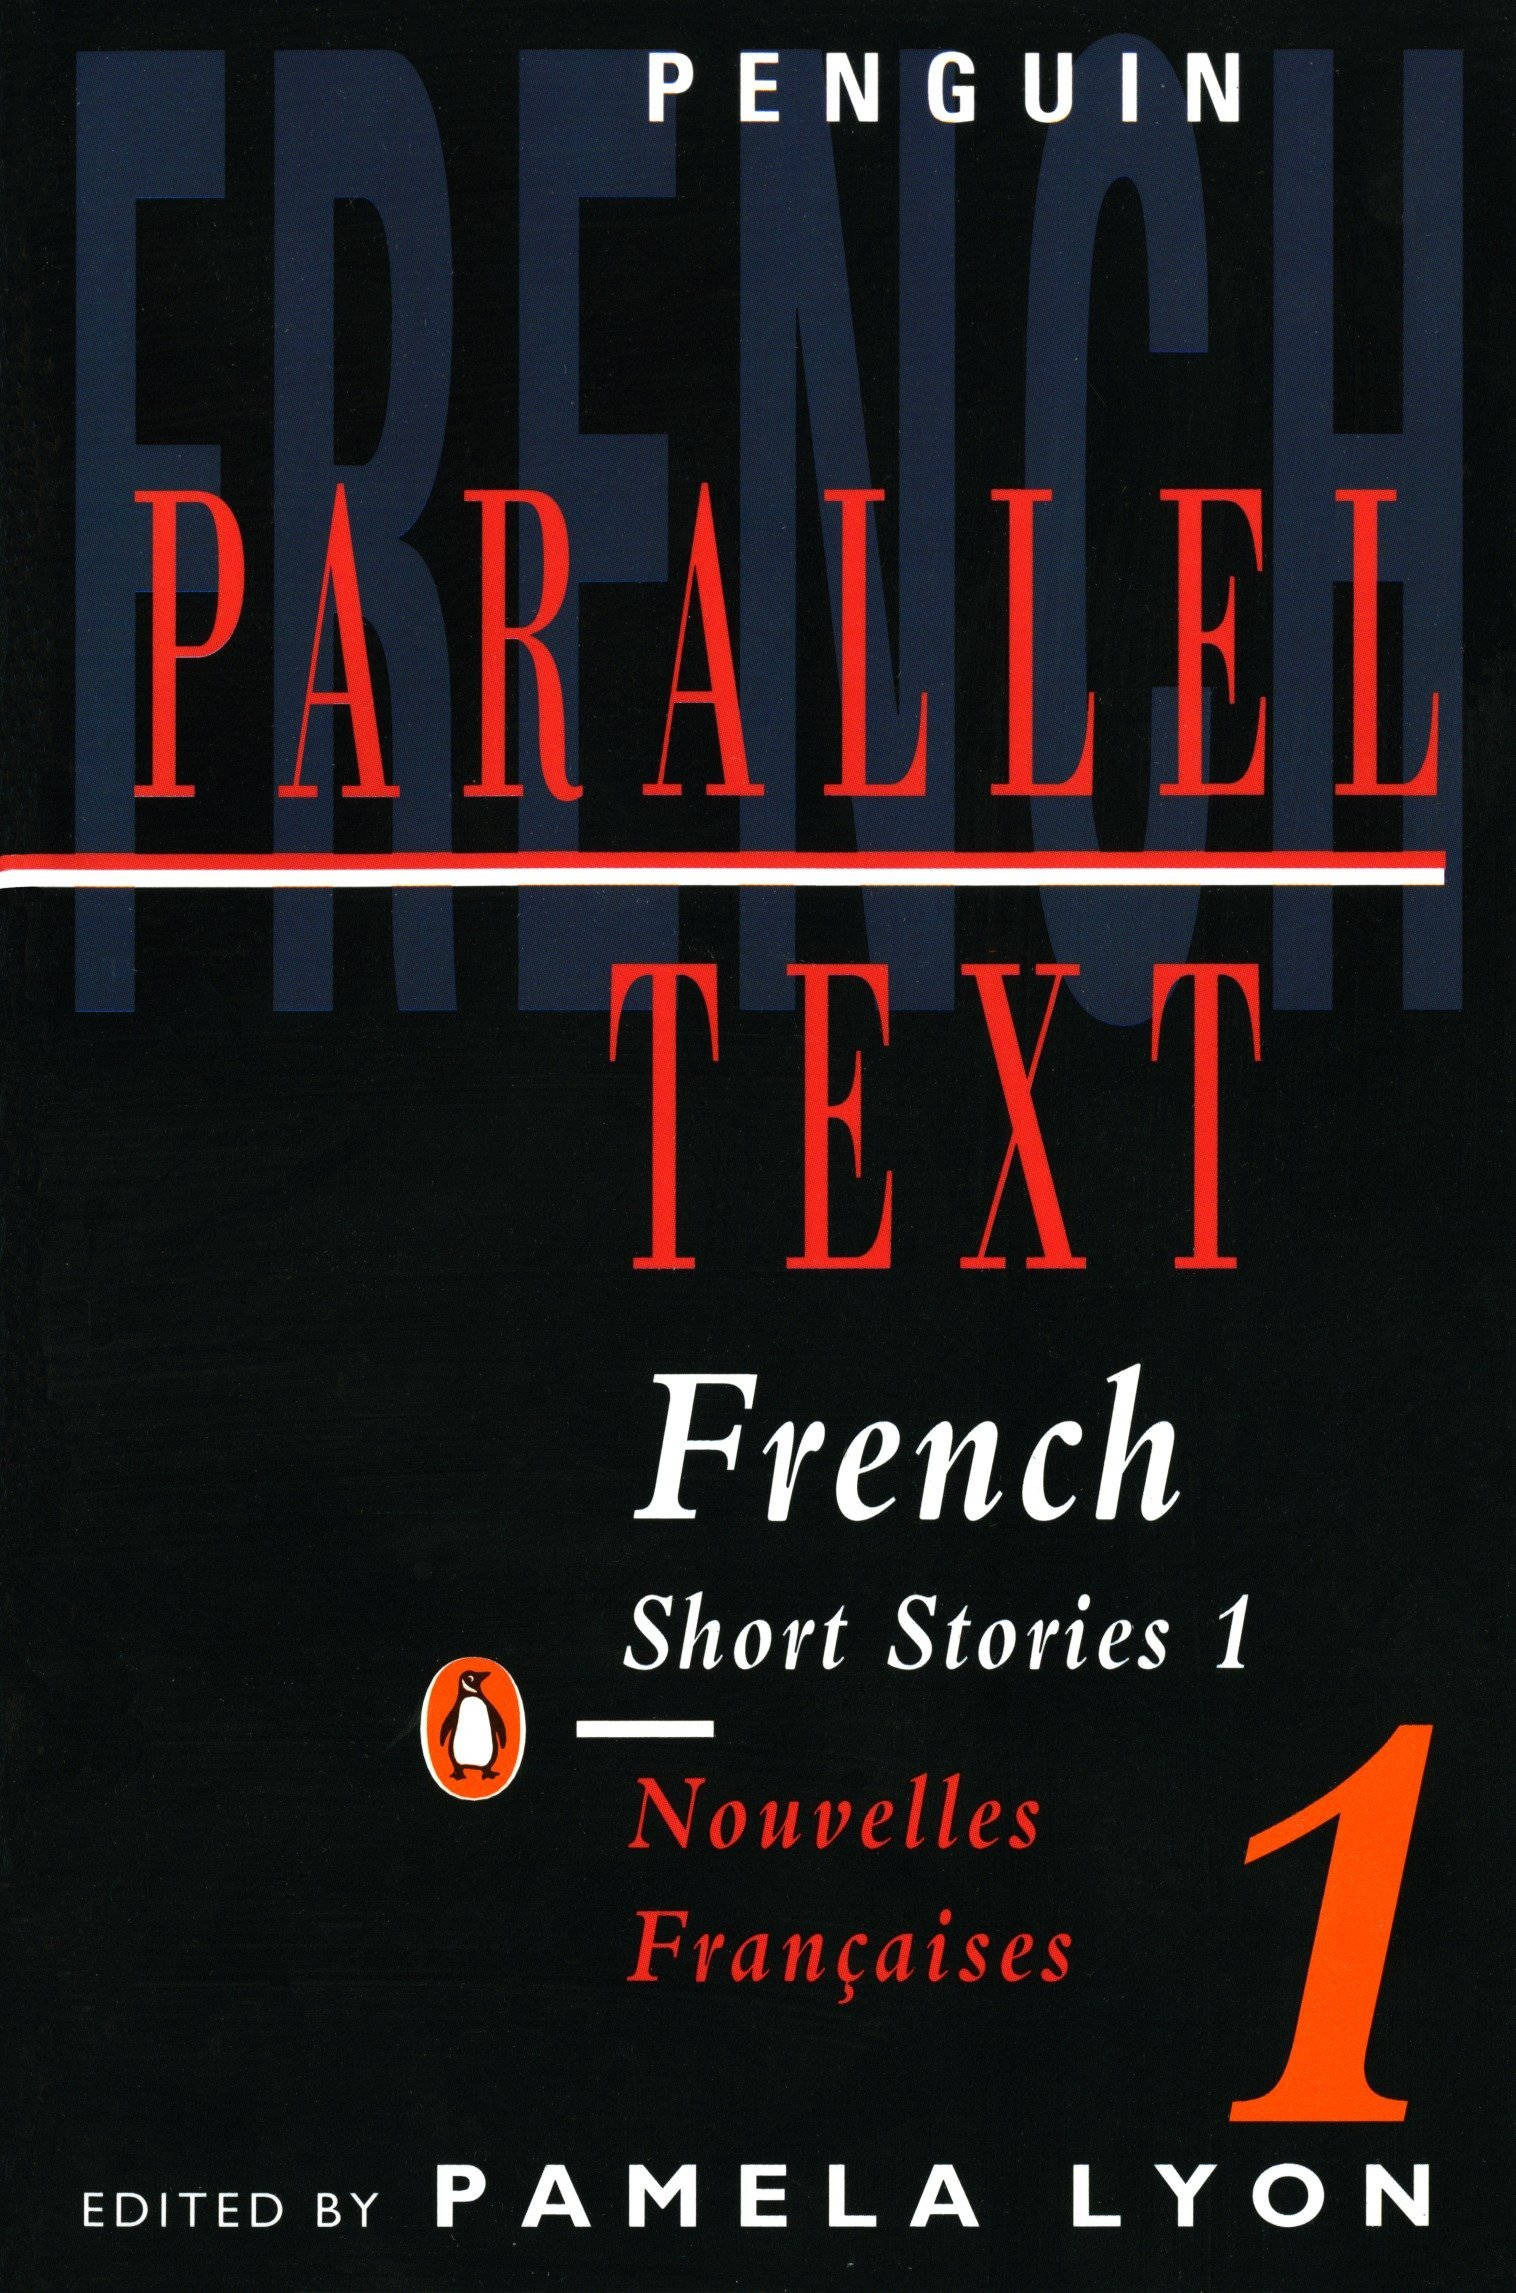 French Short Stories 1 / Nouvelles Francaises 1: Parallel Text (Penguin Parallel Text) (French and English Edition) by Lyon, Pamela (EDT)